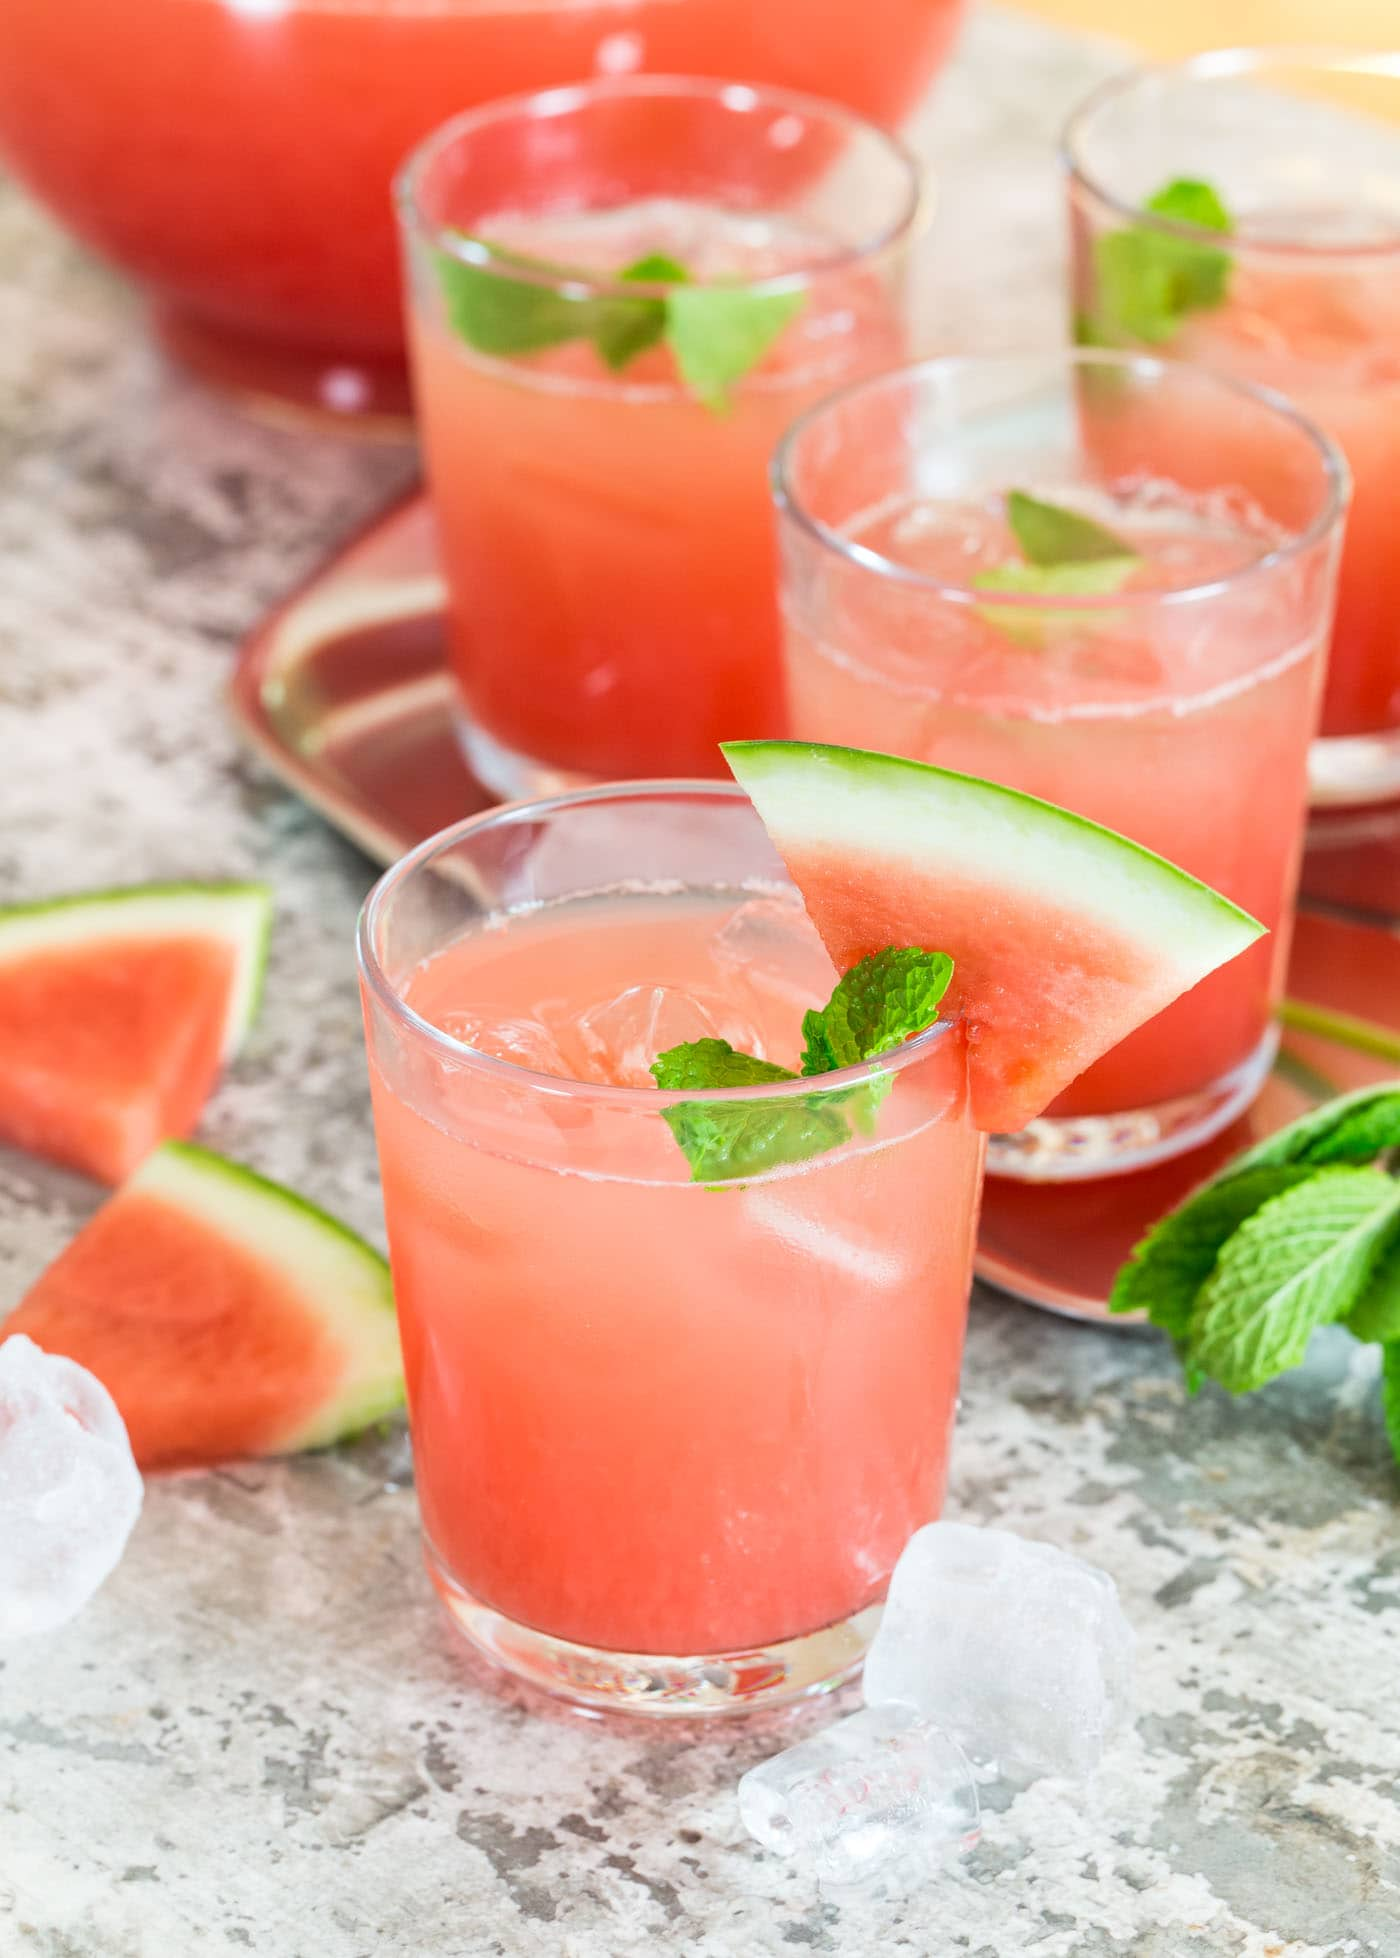 Cups of punch on tray with watermelon and mint.